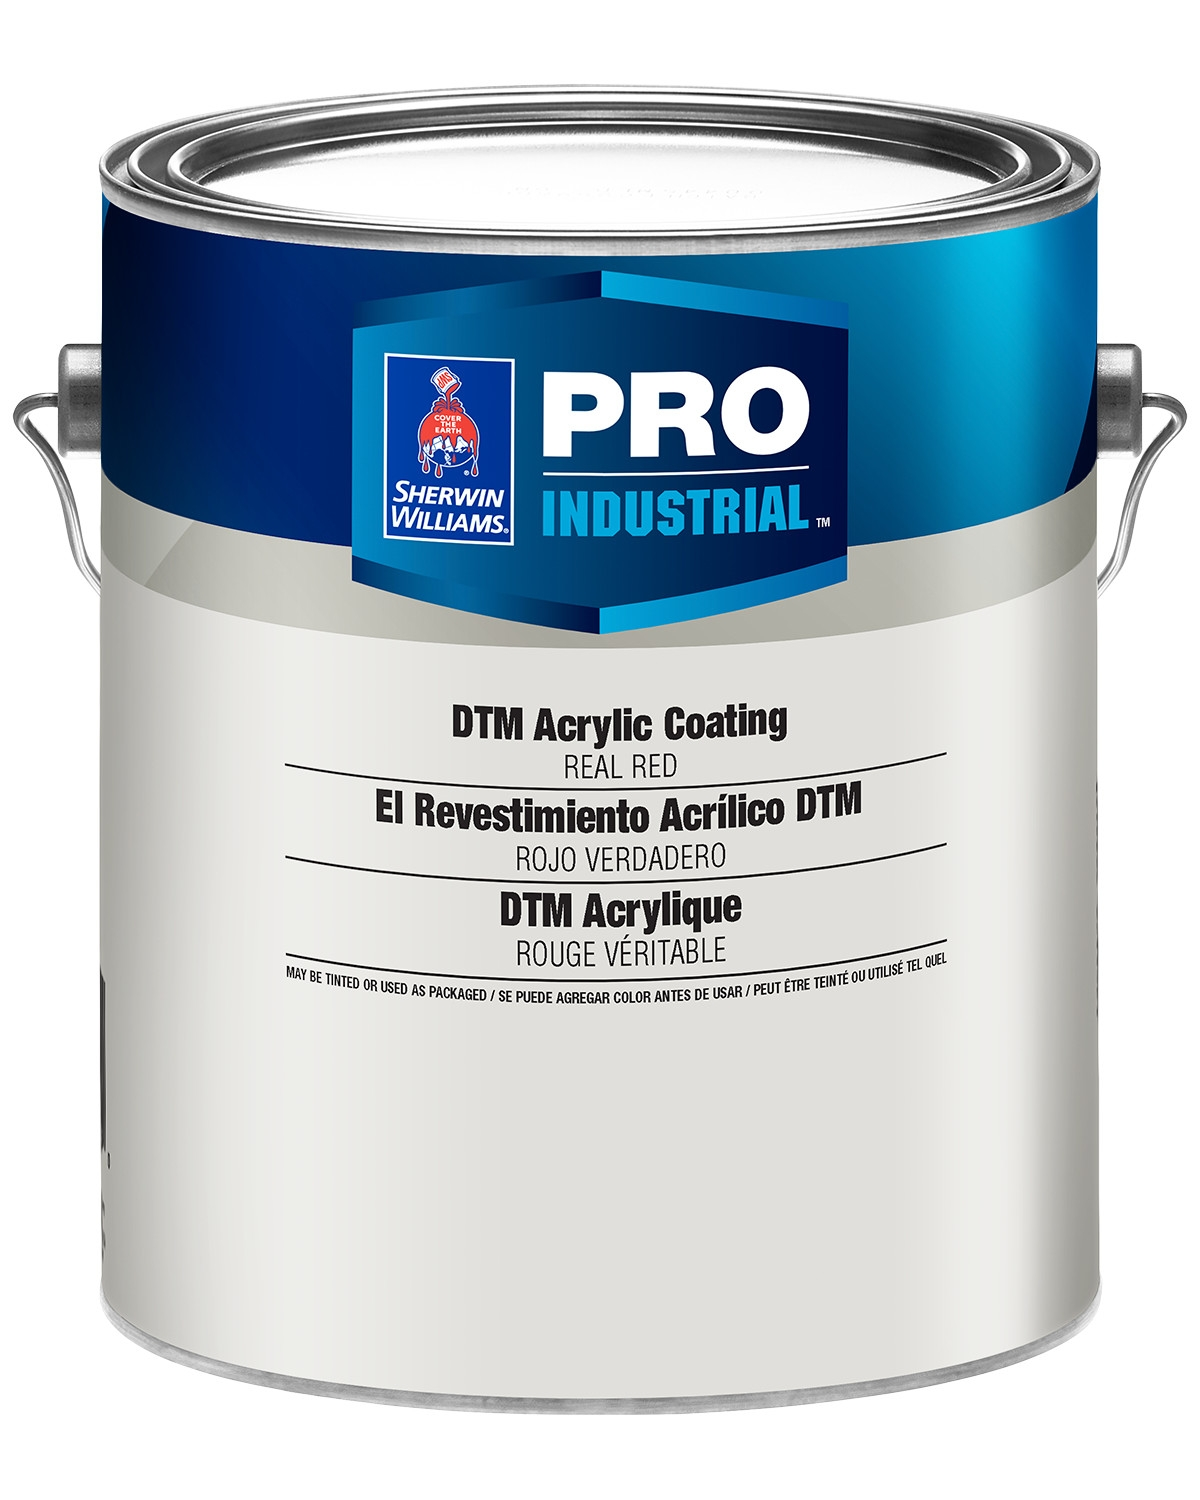 Pro Industrial DTM Acrylic - Sherwin-Williams